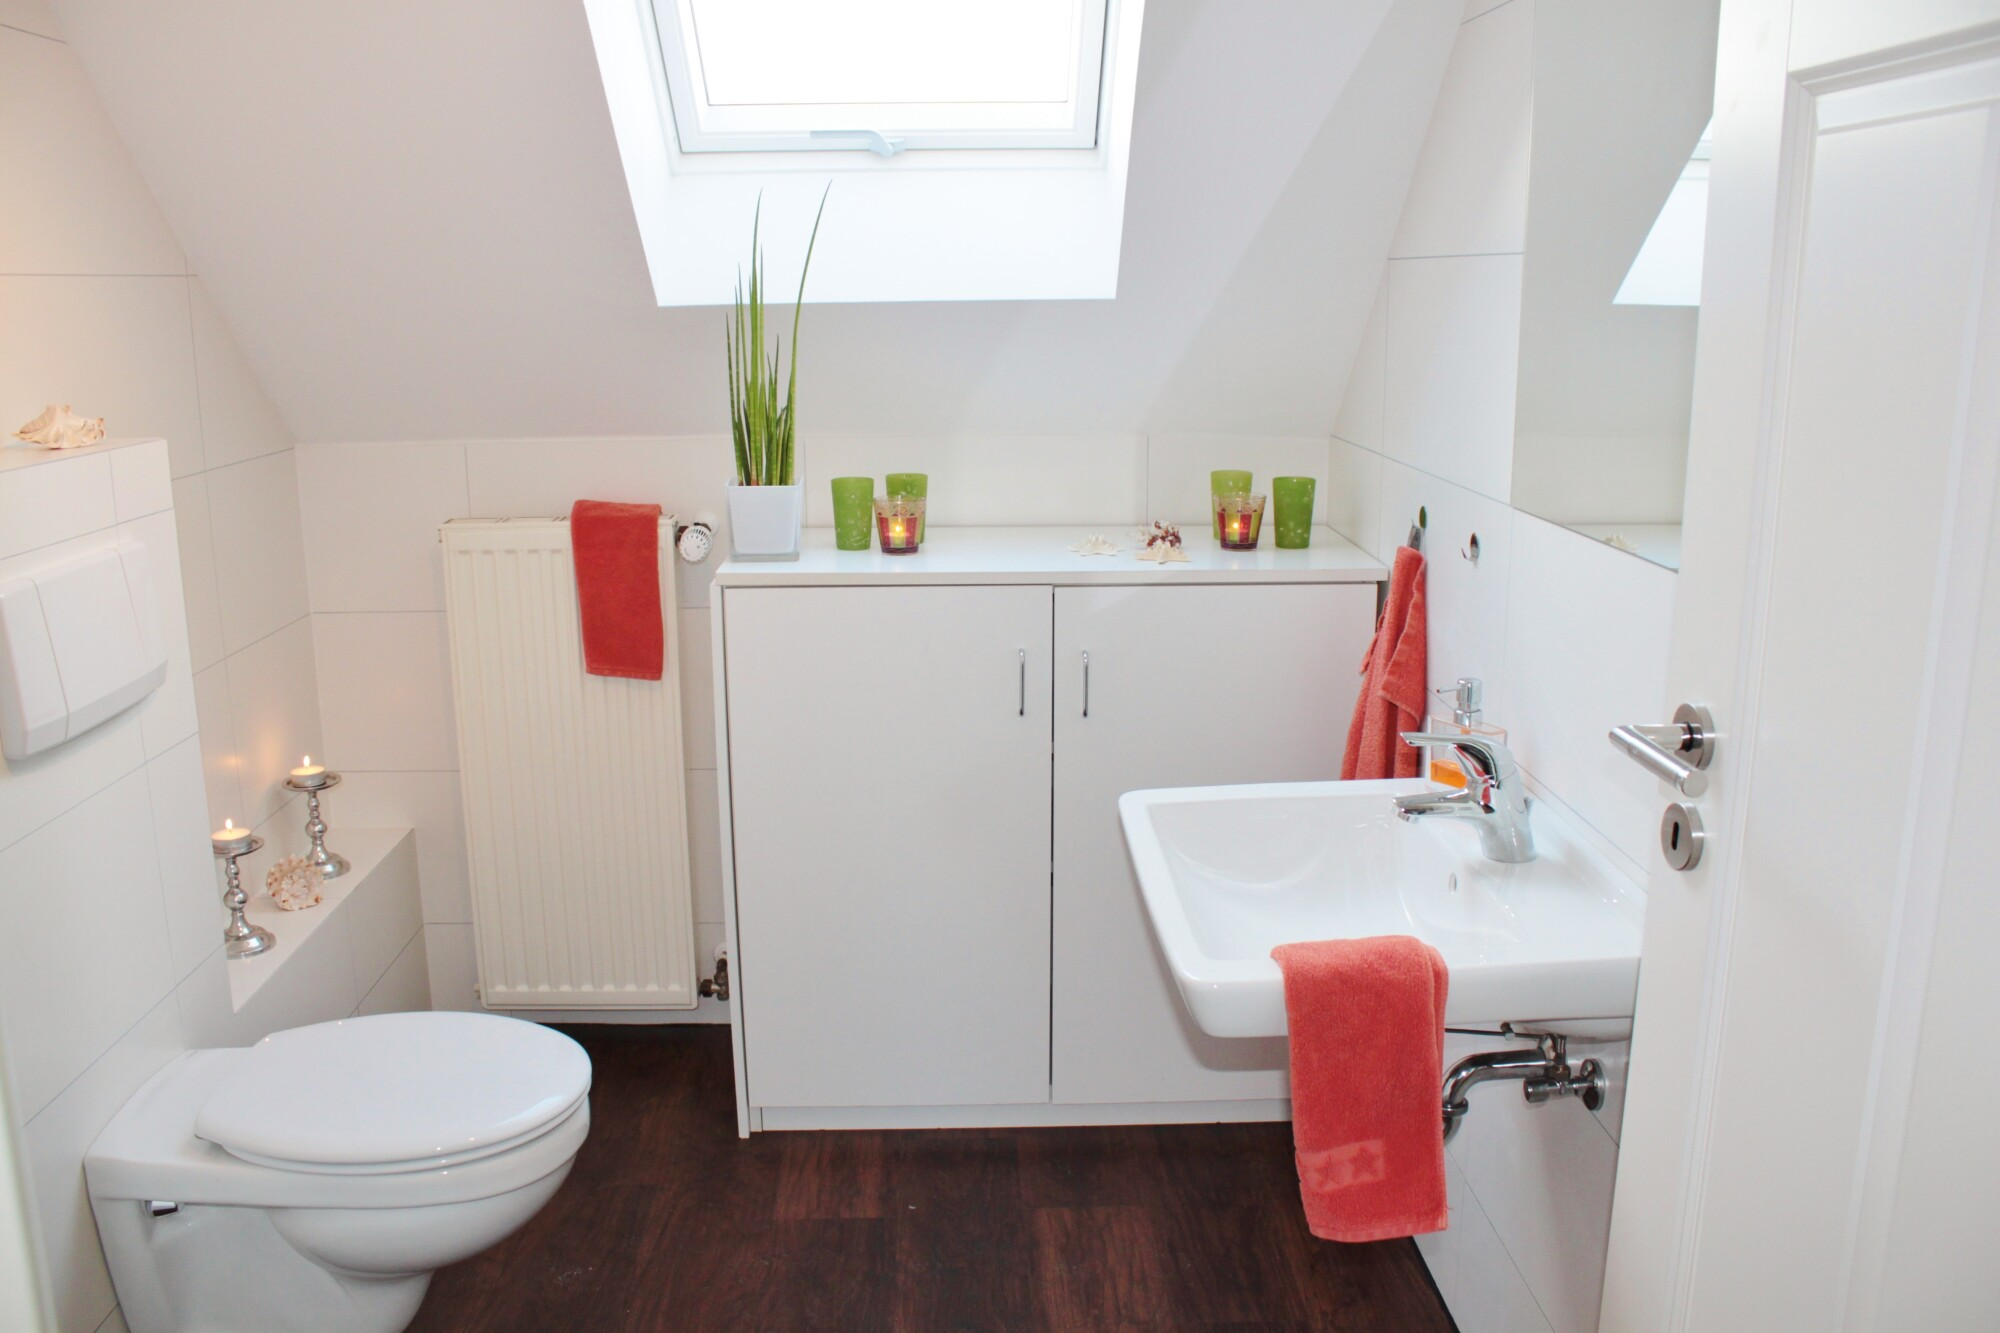 Flushed Away: 4 Signs of a Broken Toilet